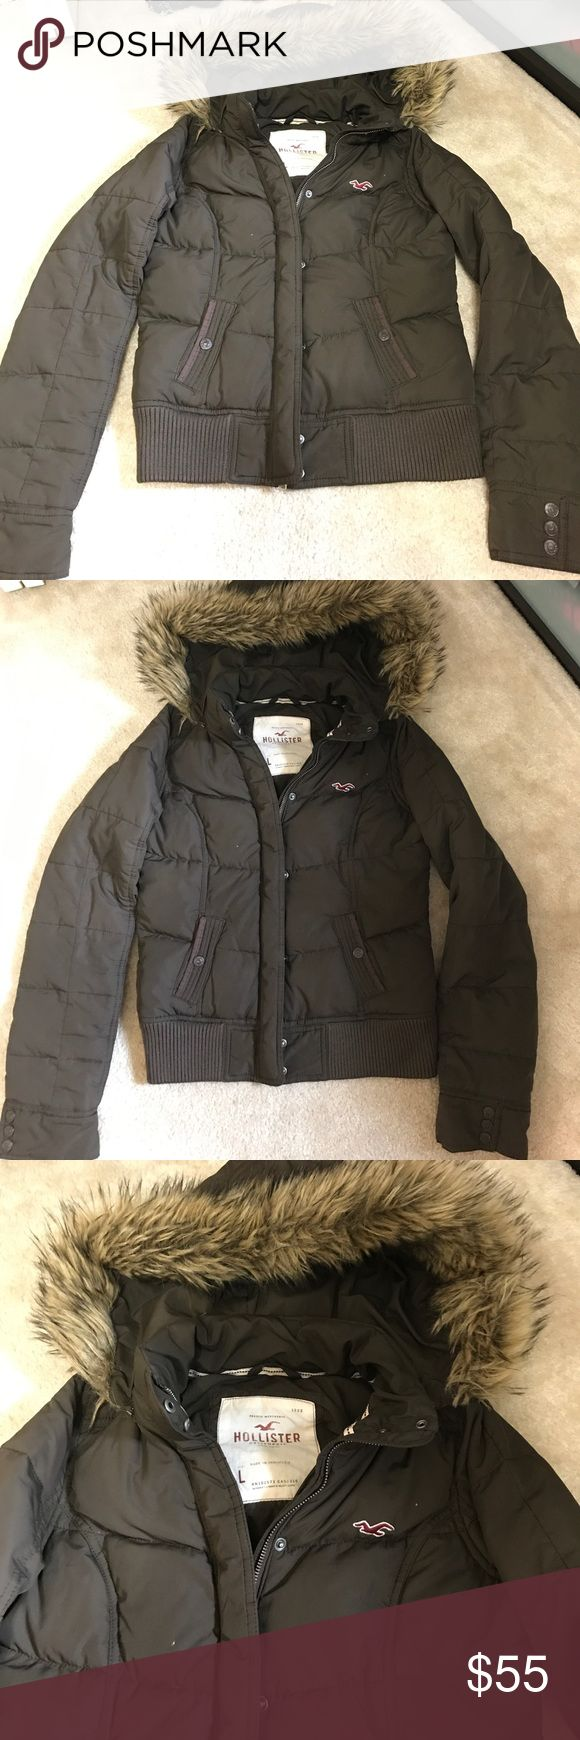 Hollister Jacket Brown Puffer Warm Fur Hood Size L Hollister Jacket Brown Zip Up Warm Fur Hood Size L. Juniors Large size. Preowned in great condition. Smoke free home. Button clips and zipper on front. Very warm!!! Hollister Jackets & Coats